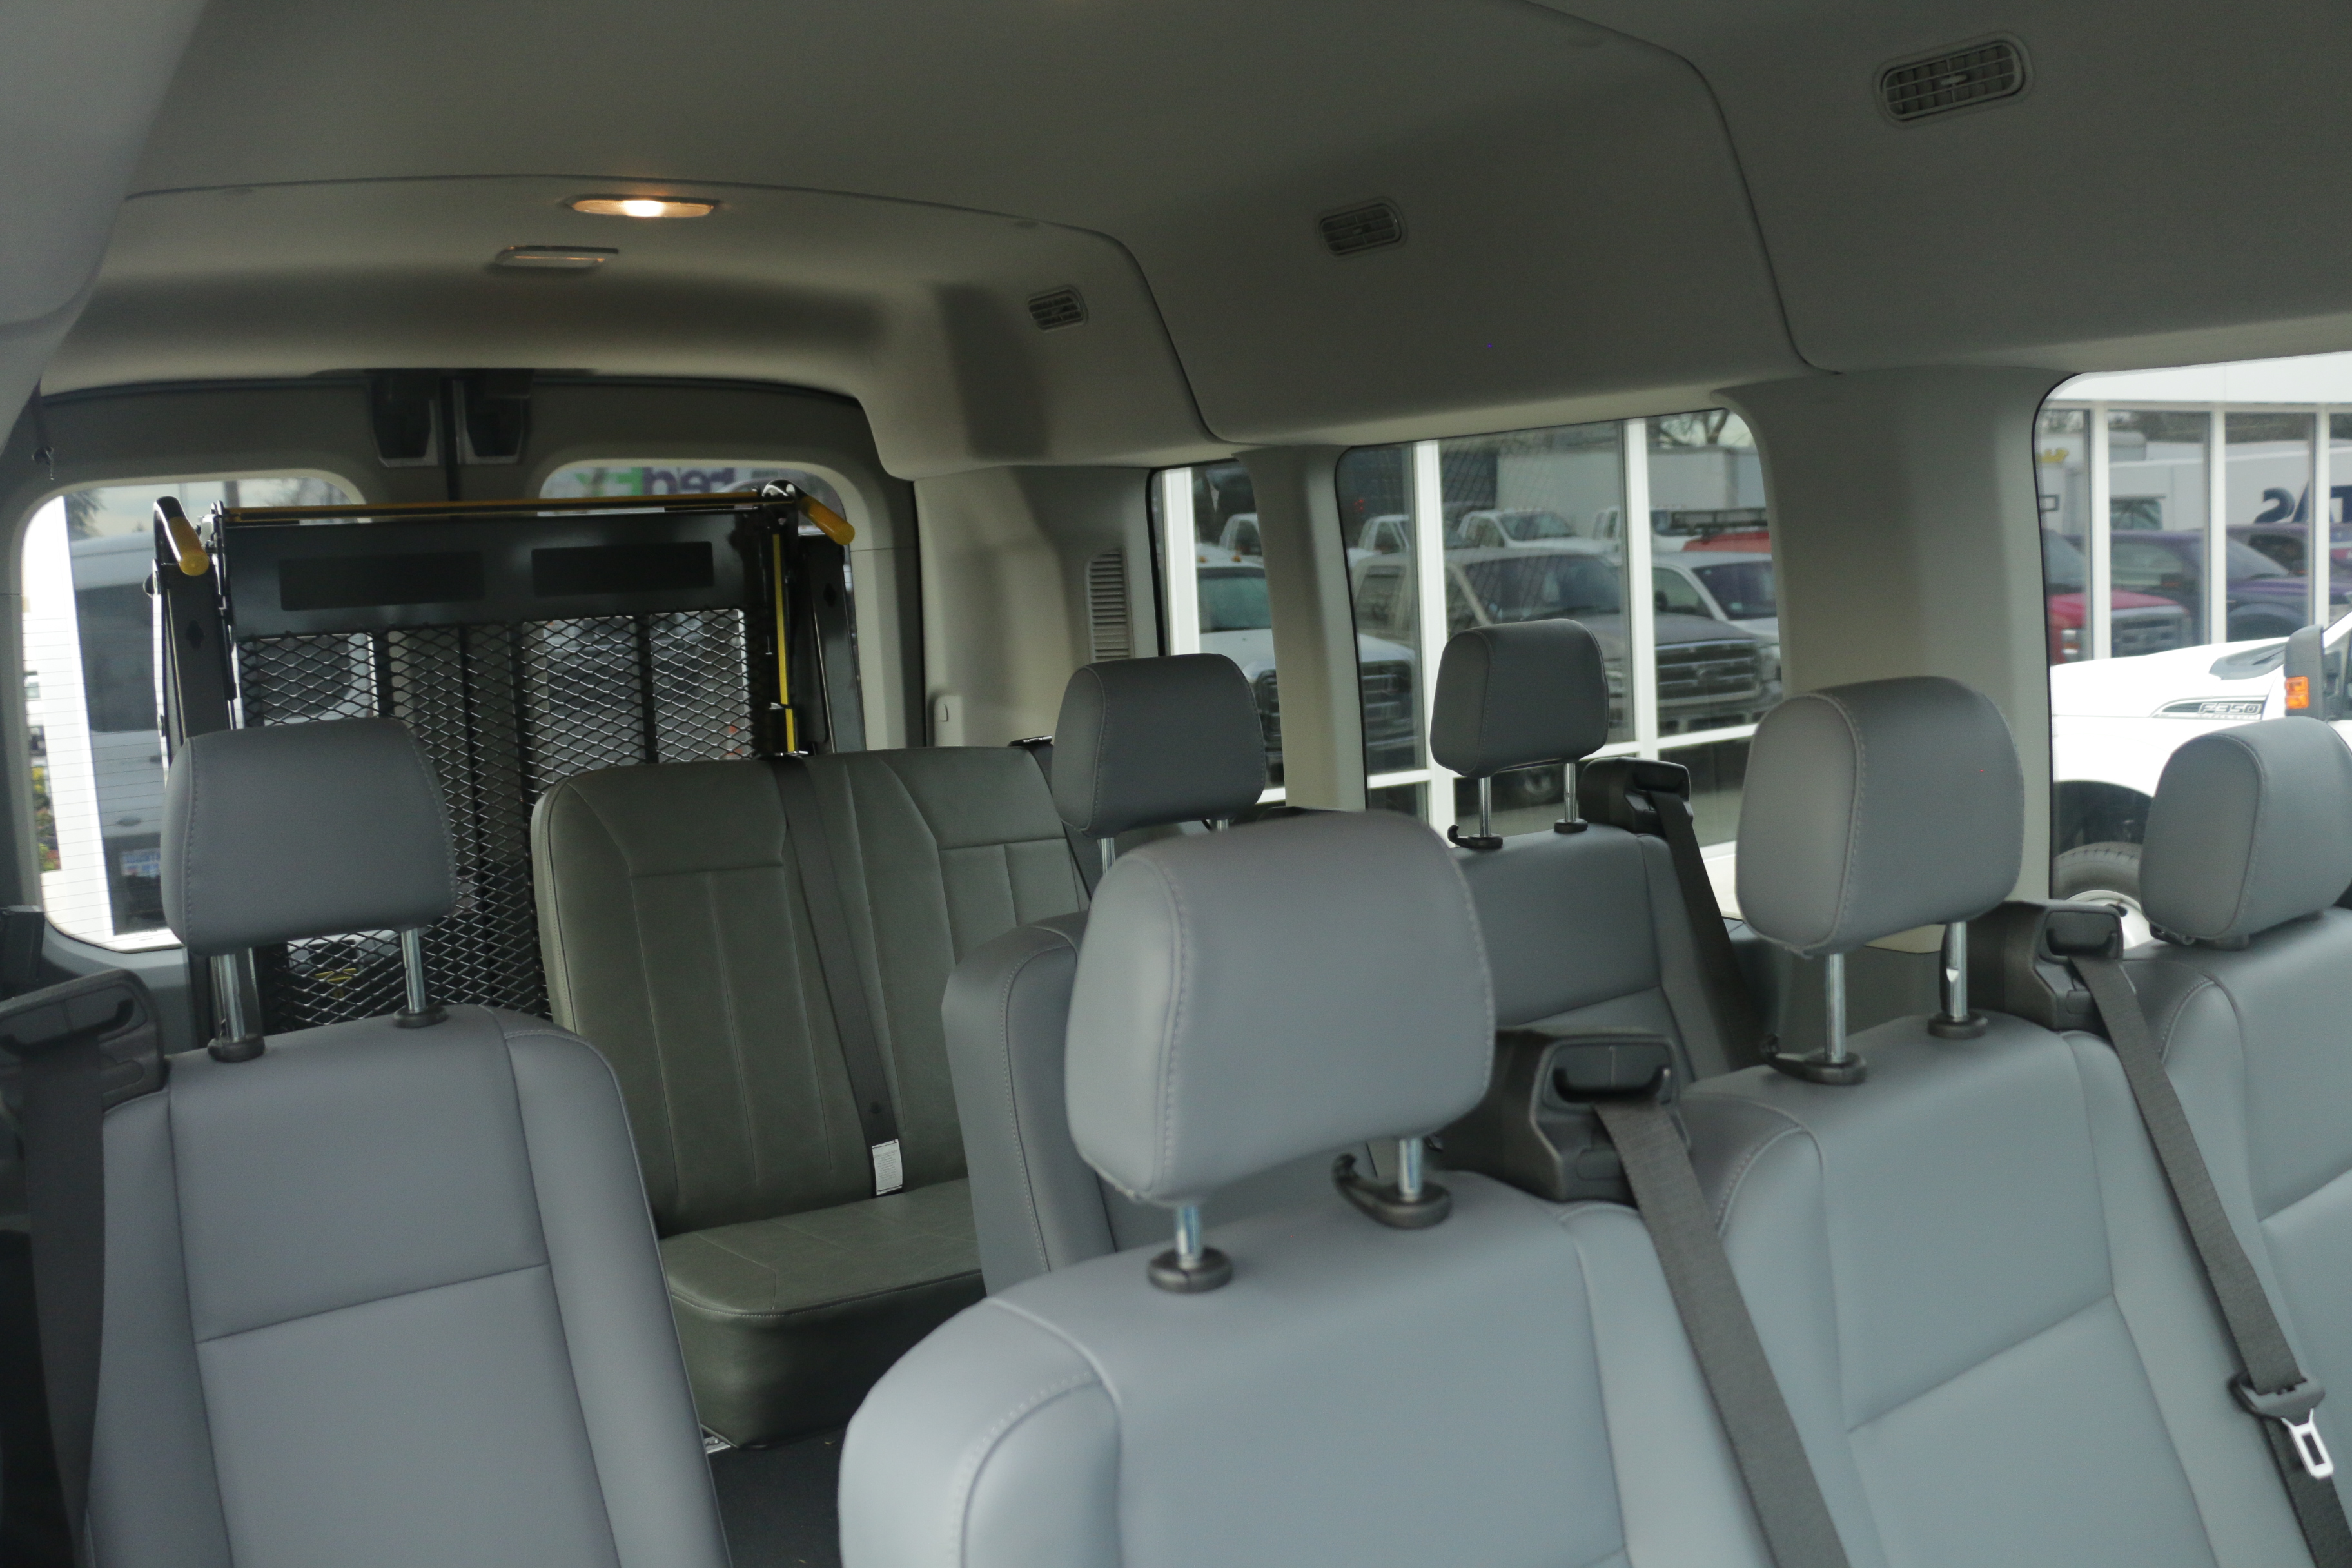 2015 Transit 350, Braun Industries Van Upfit #C54440 - photo 15